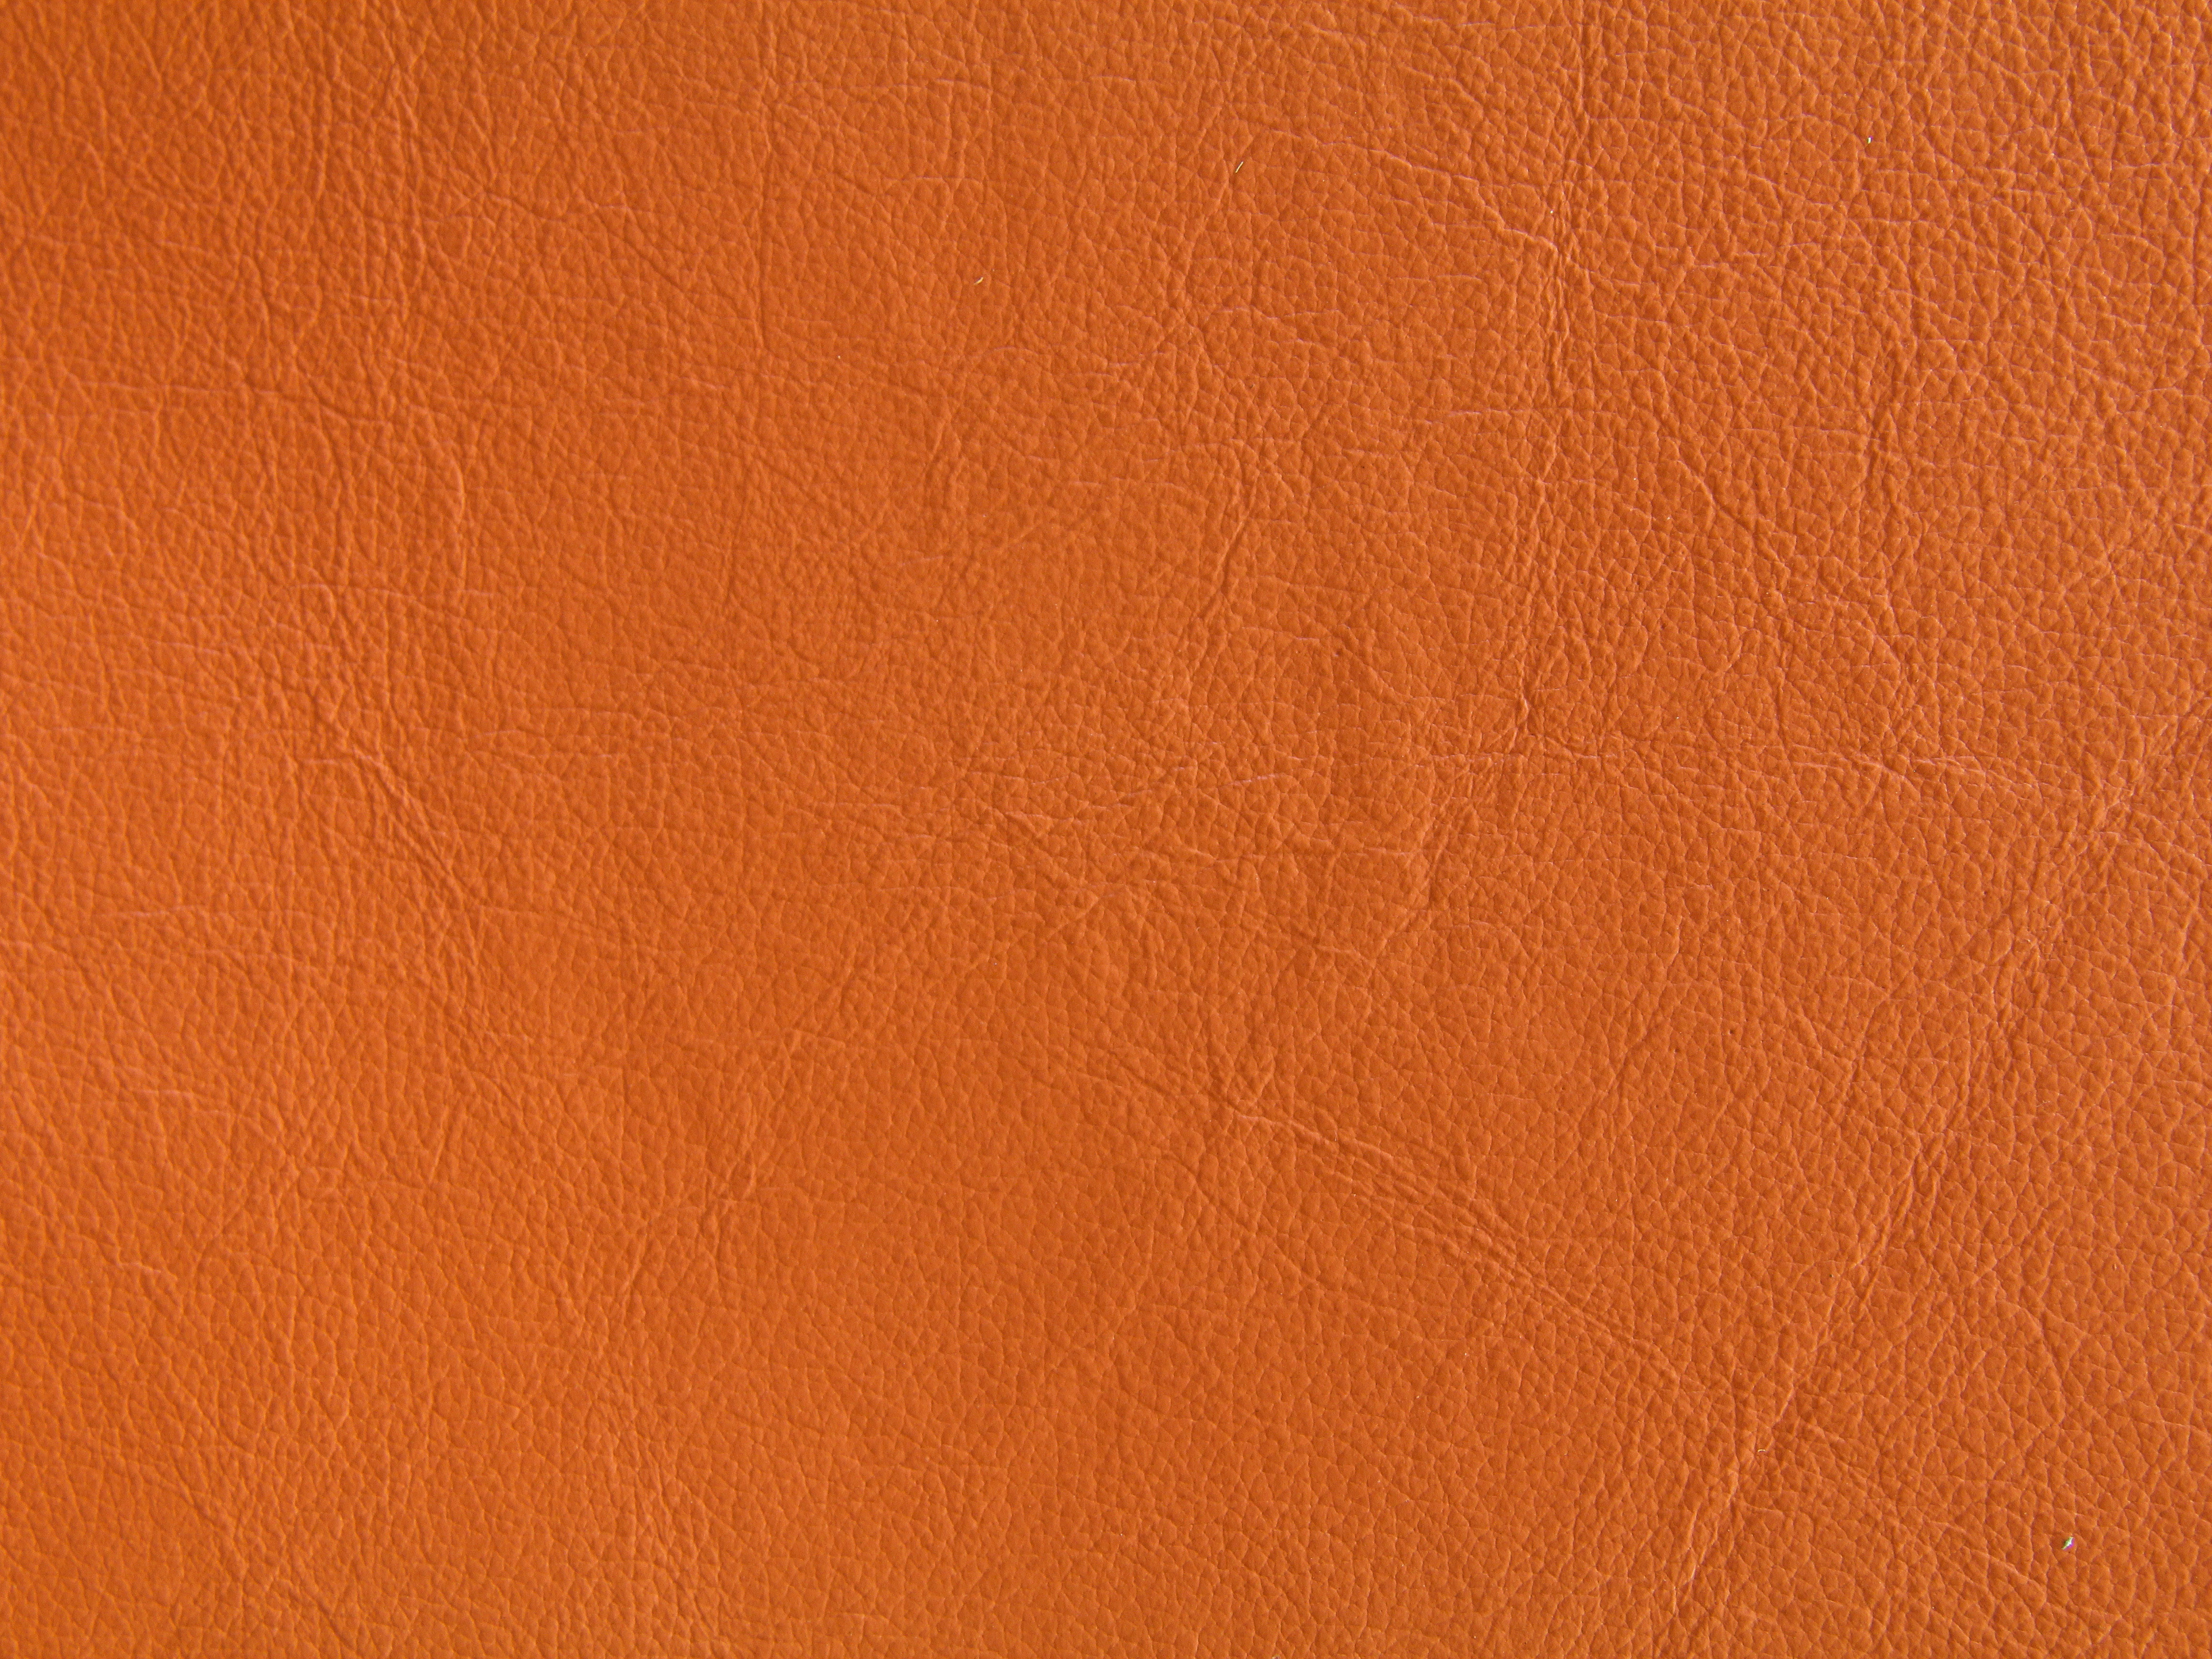 Suede Upholstery Fabric >> orange-leather-texture-bright-fabric-wallpaper-design-stock-photo - TextureX- Free and premium ...